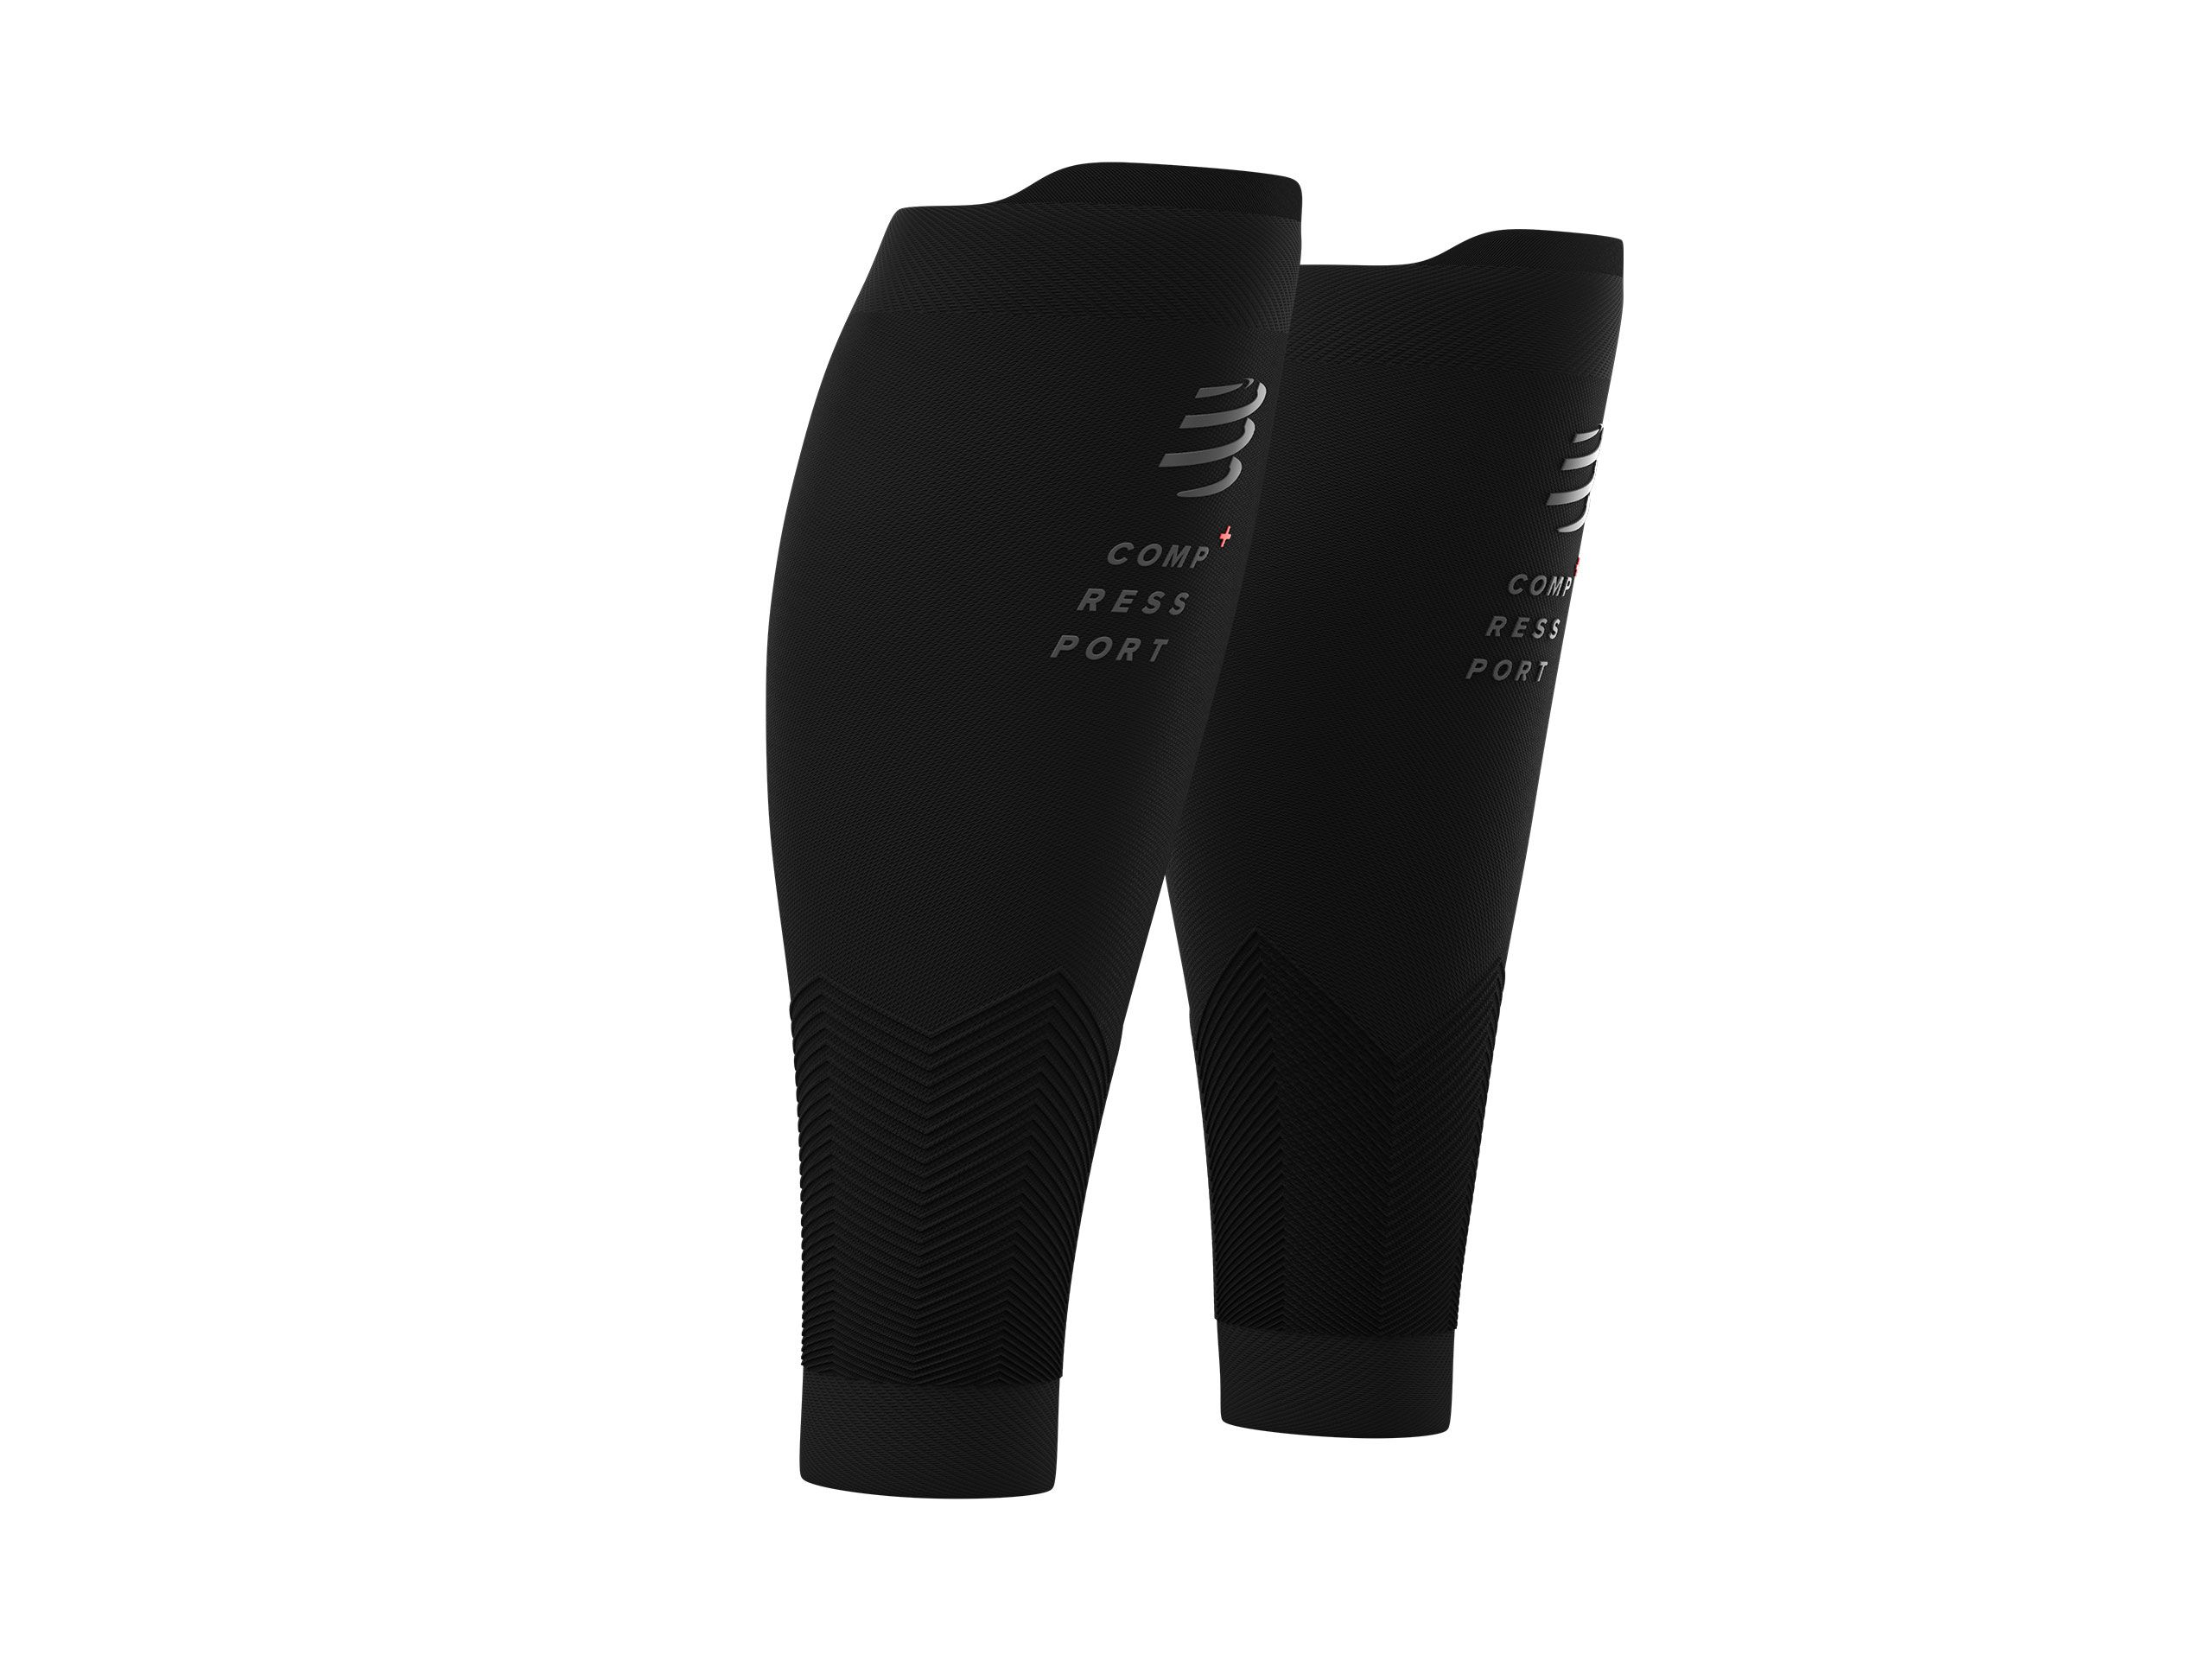 R2v2 flash calf sleeves black